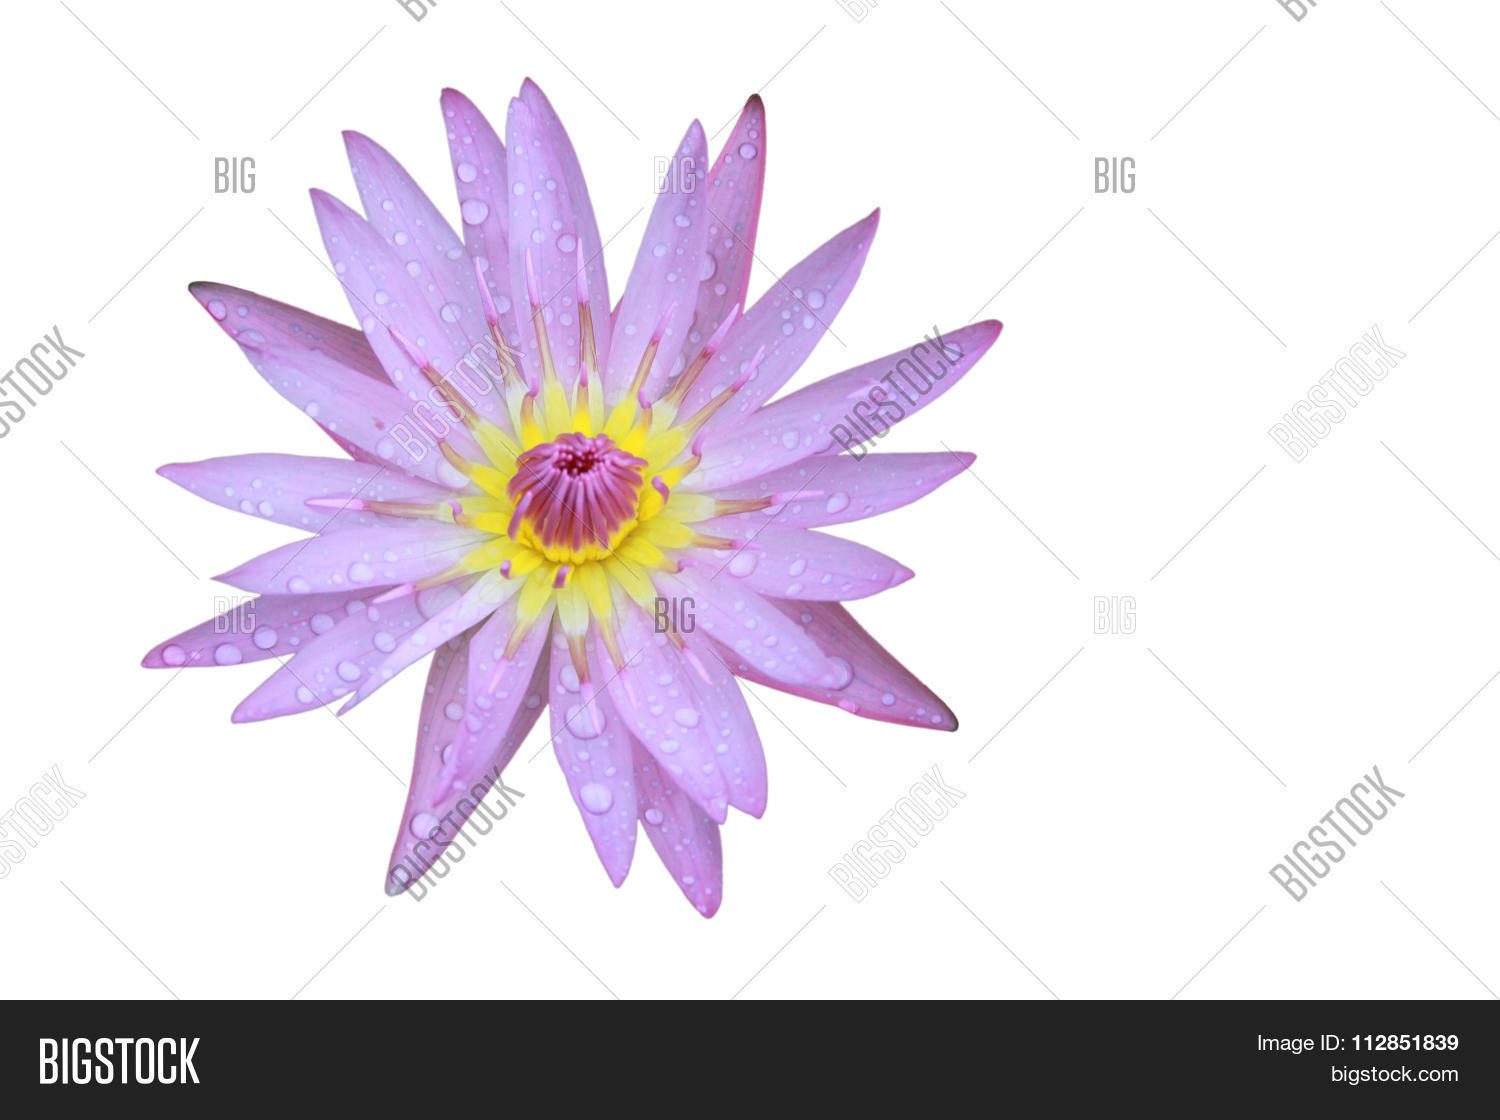 Purple lotus flower image photo free trial bigstock purple lotus flower top view has some drop water on the petal isolated on white izmirmasajfo